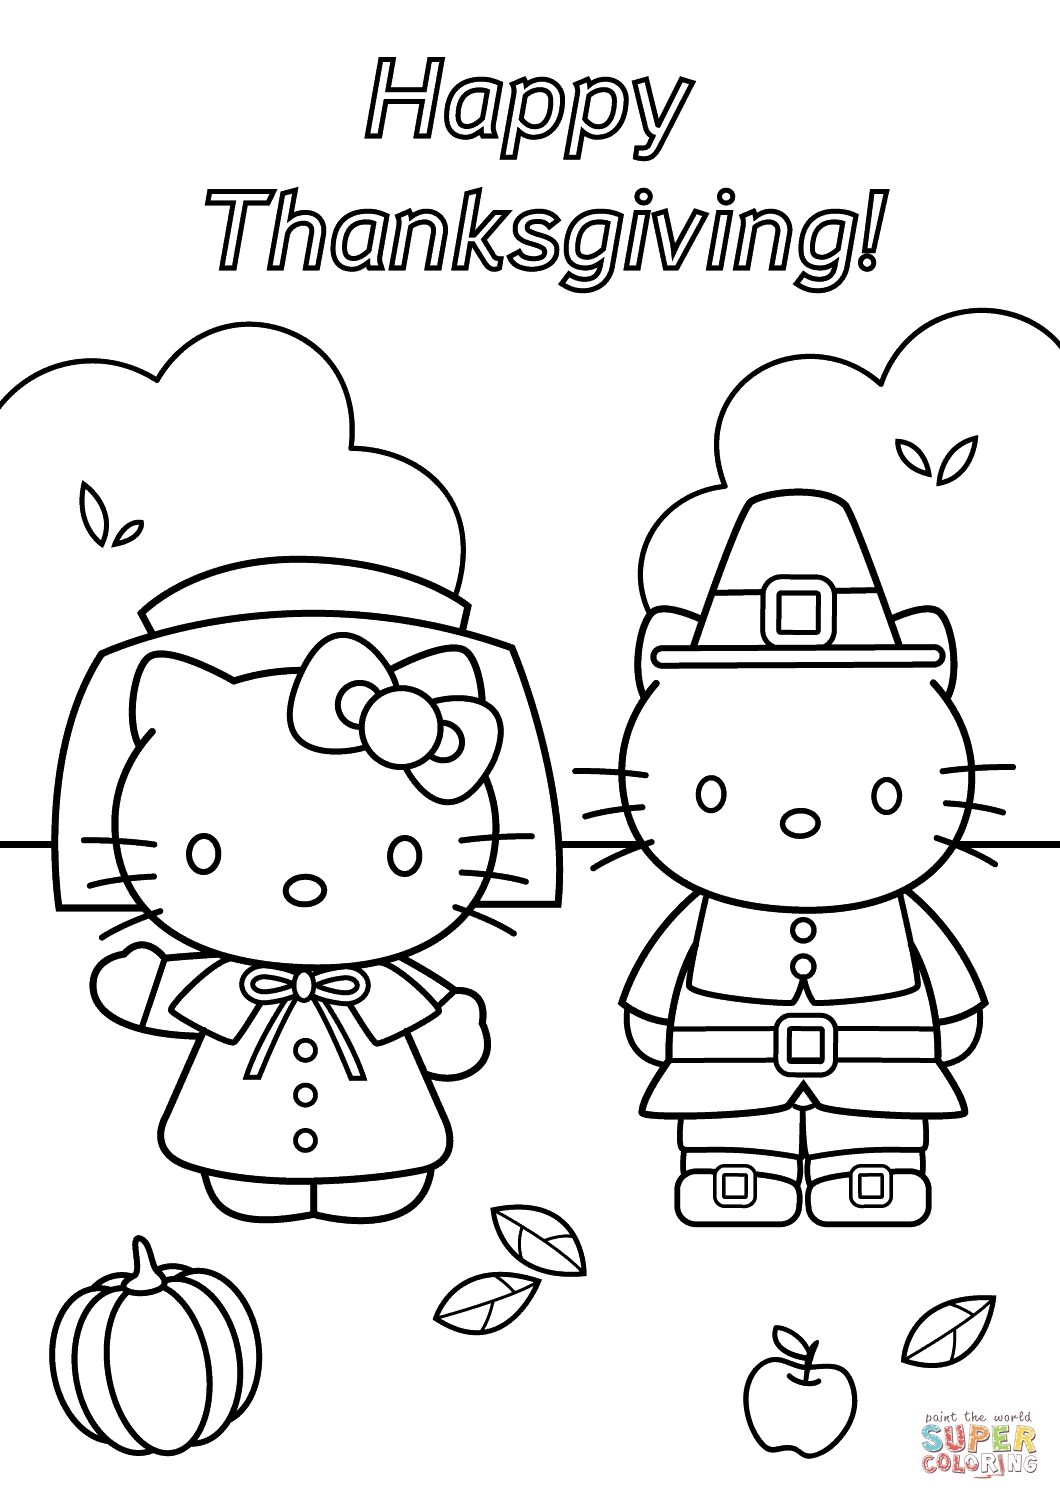 thanksgiving coloring pages free - thanksgiving coloring pages hello kitty thanksgiving coloring page free printable coloring pages to print